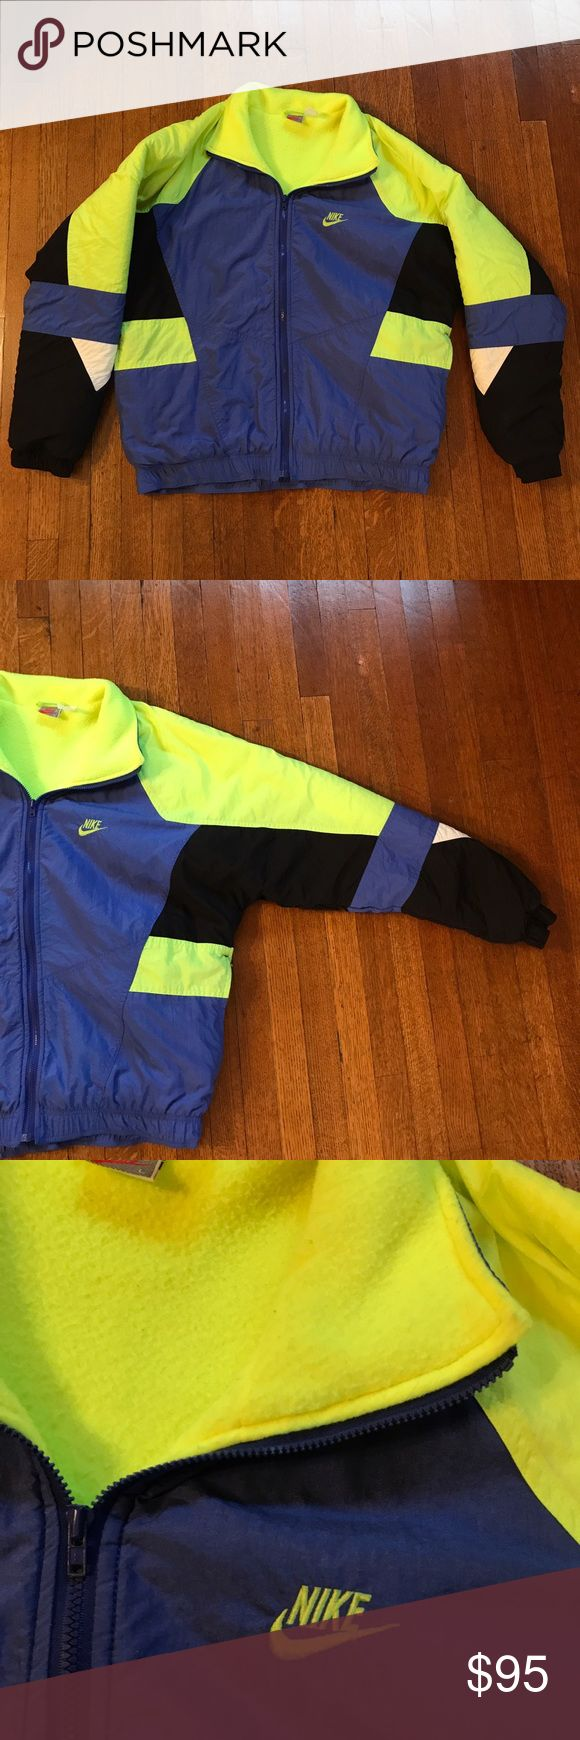 Vintage Nike Coat Vintage Nike coat in size men's large. Very good vintage condition with no stains or holes. Only flaw is the light piling on the inside fleece as pictured. Features two zipper front pockets. Nike Jackets & Coats